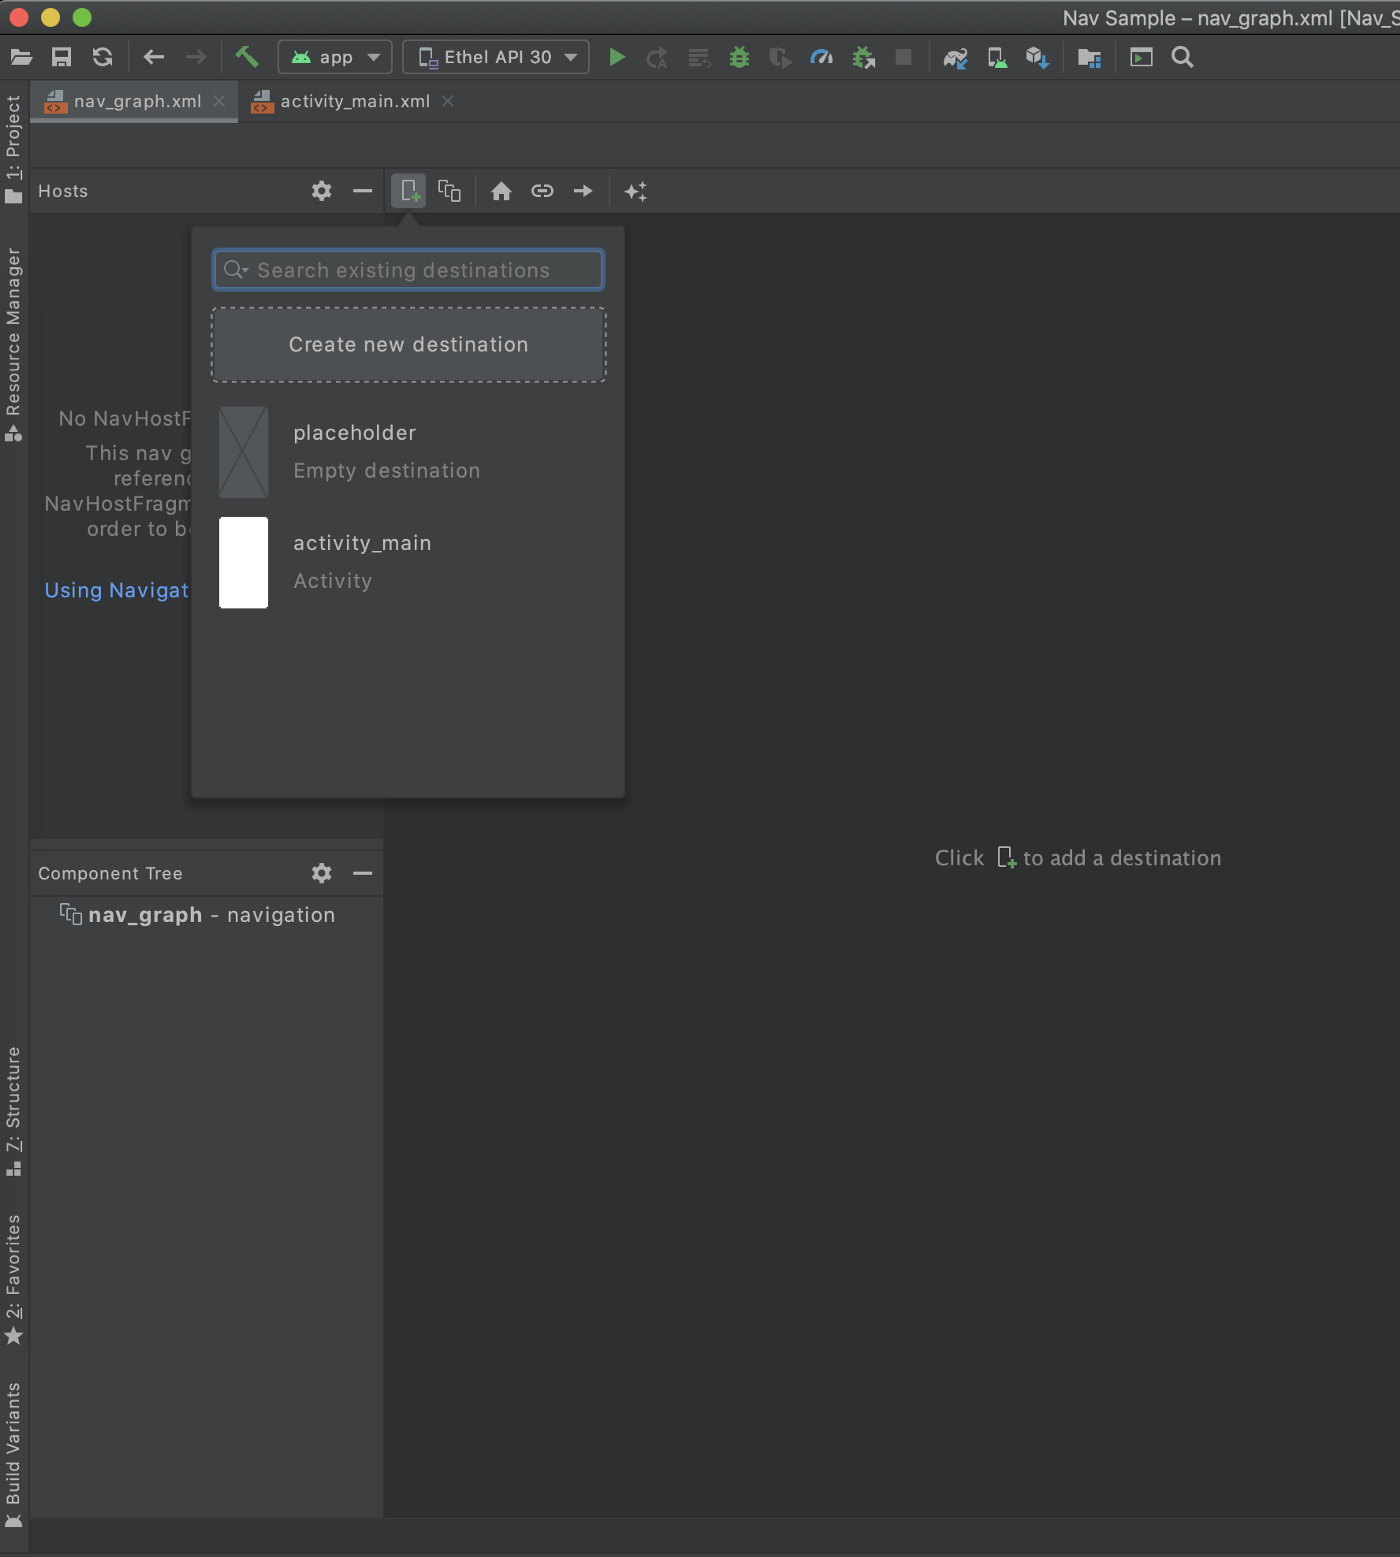 Android Studio navigation graph—creating a new destination using 'Design' view